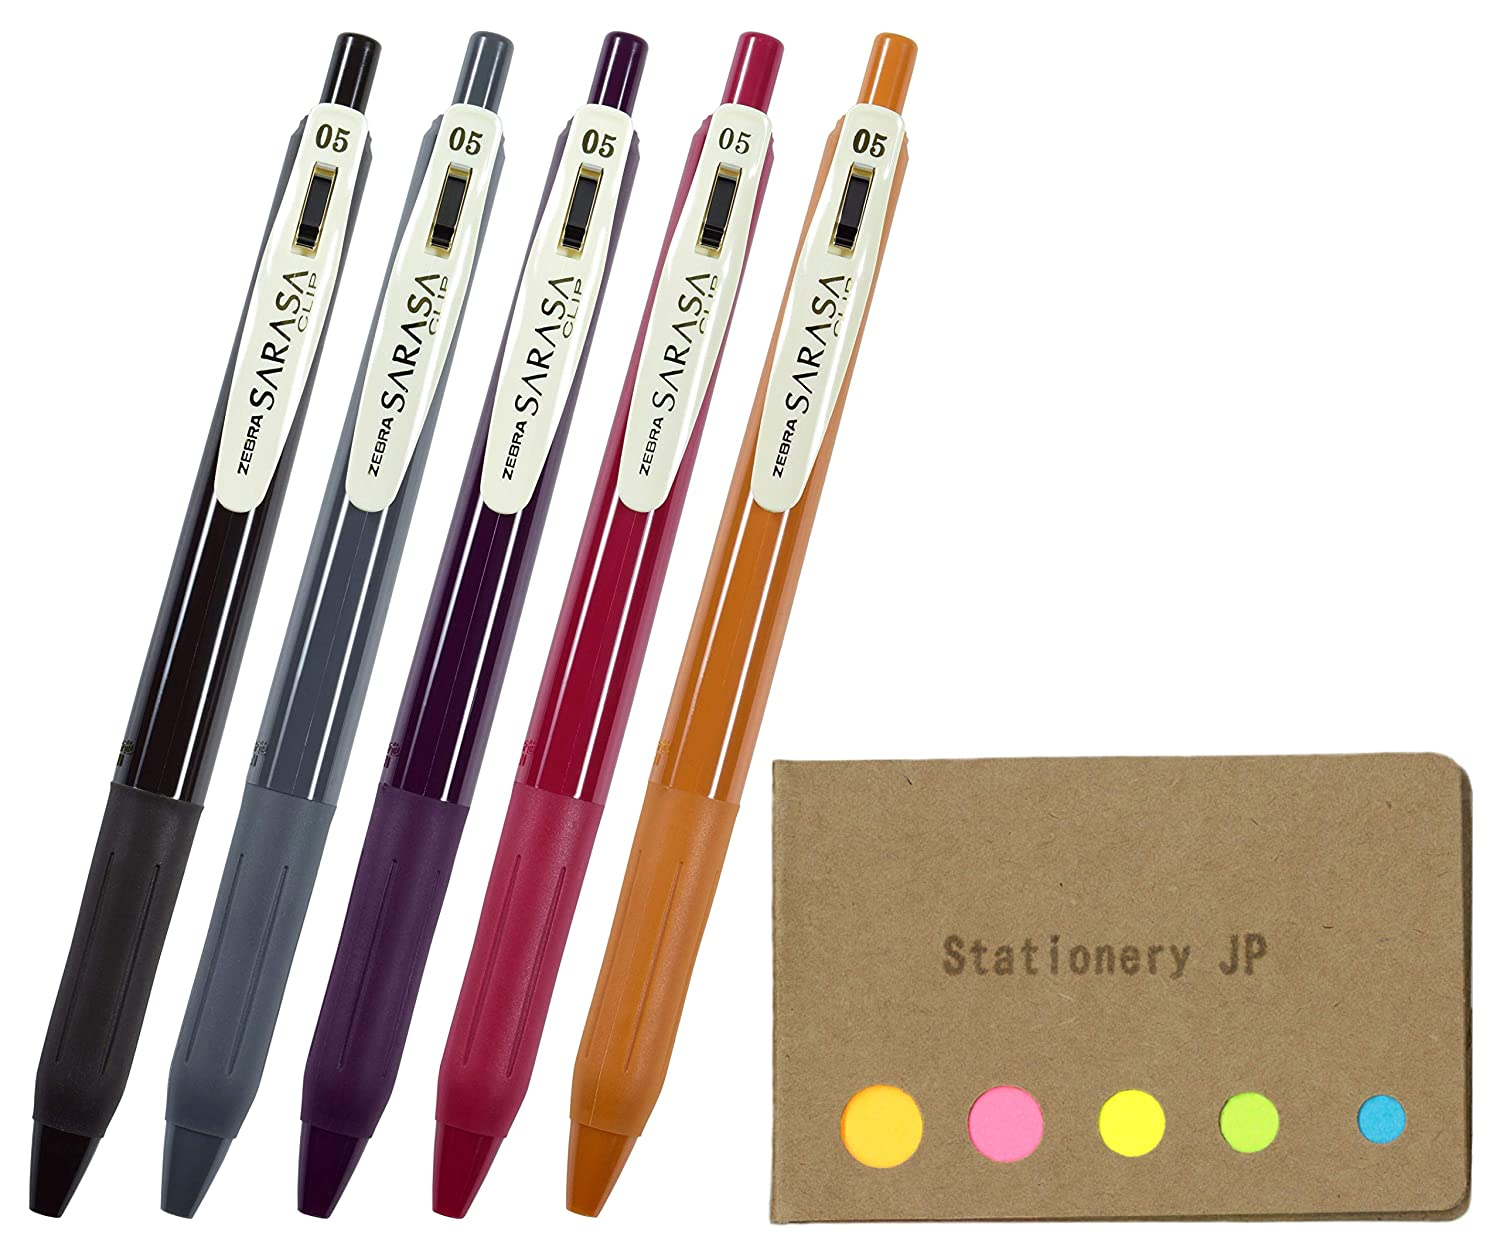 926dd4ce8e7c Amazon.com: Zebra Sarasa Clip 0.5 Retractable Gel Ink Pen, Rubber Grip, 0.5  mm, Vintage Colors Type 2, 5 Color Ink, Sticky Notes Value Set: Office  Products